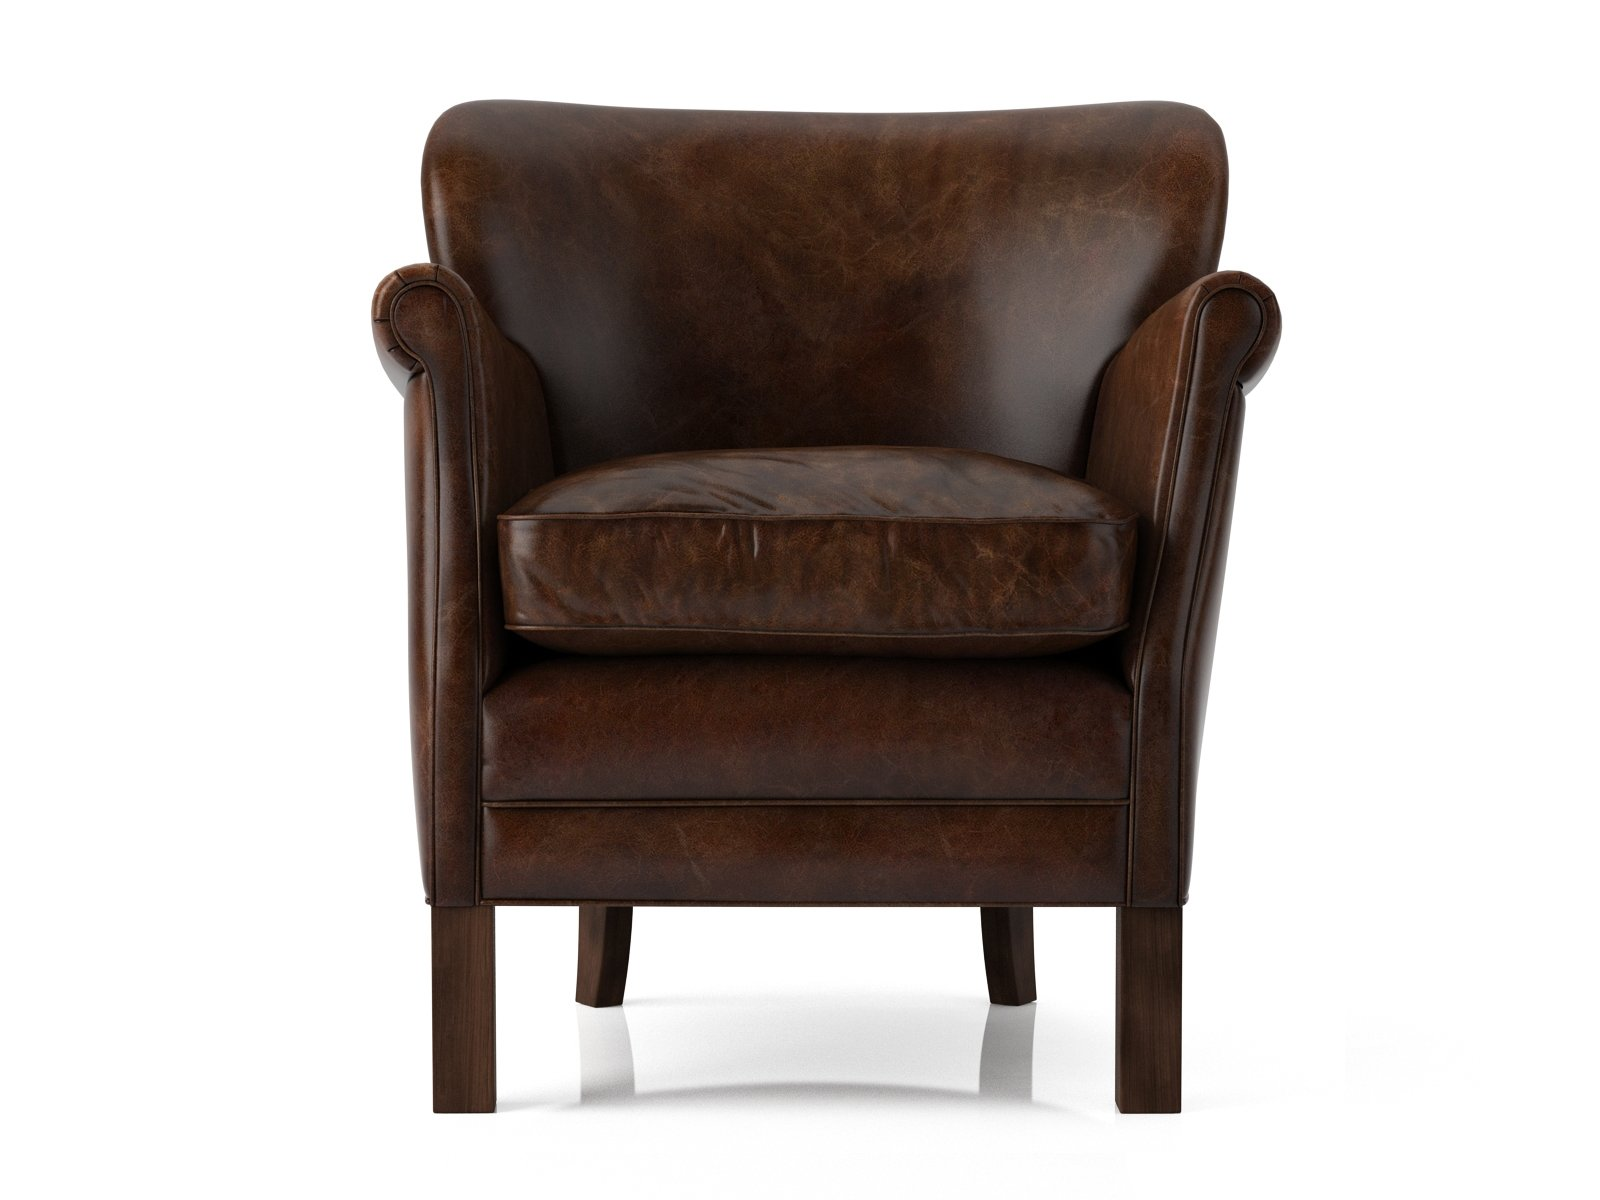 Restoration Hardware Leather Chairs Professor 39s Leather Chair 3d Model Restoration Hardware